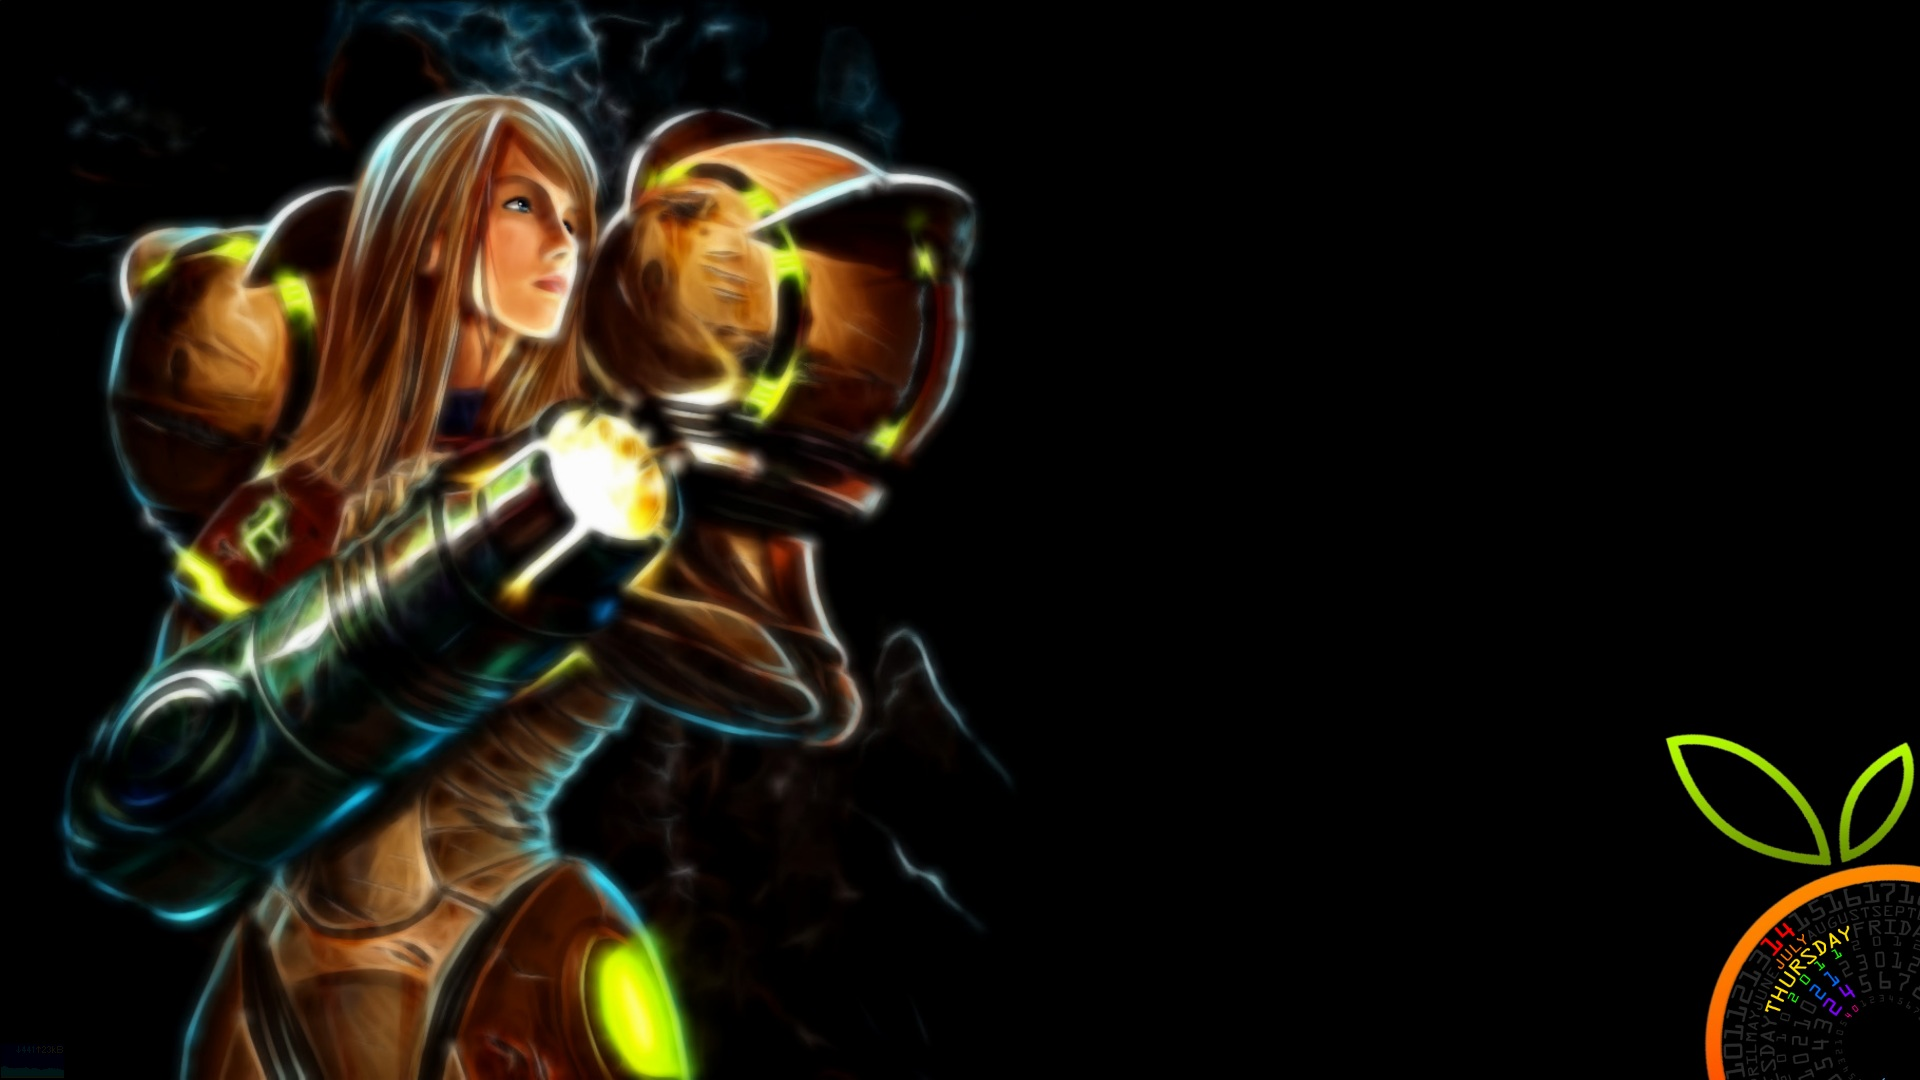 Free Metroid Wallpaper